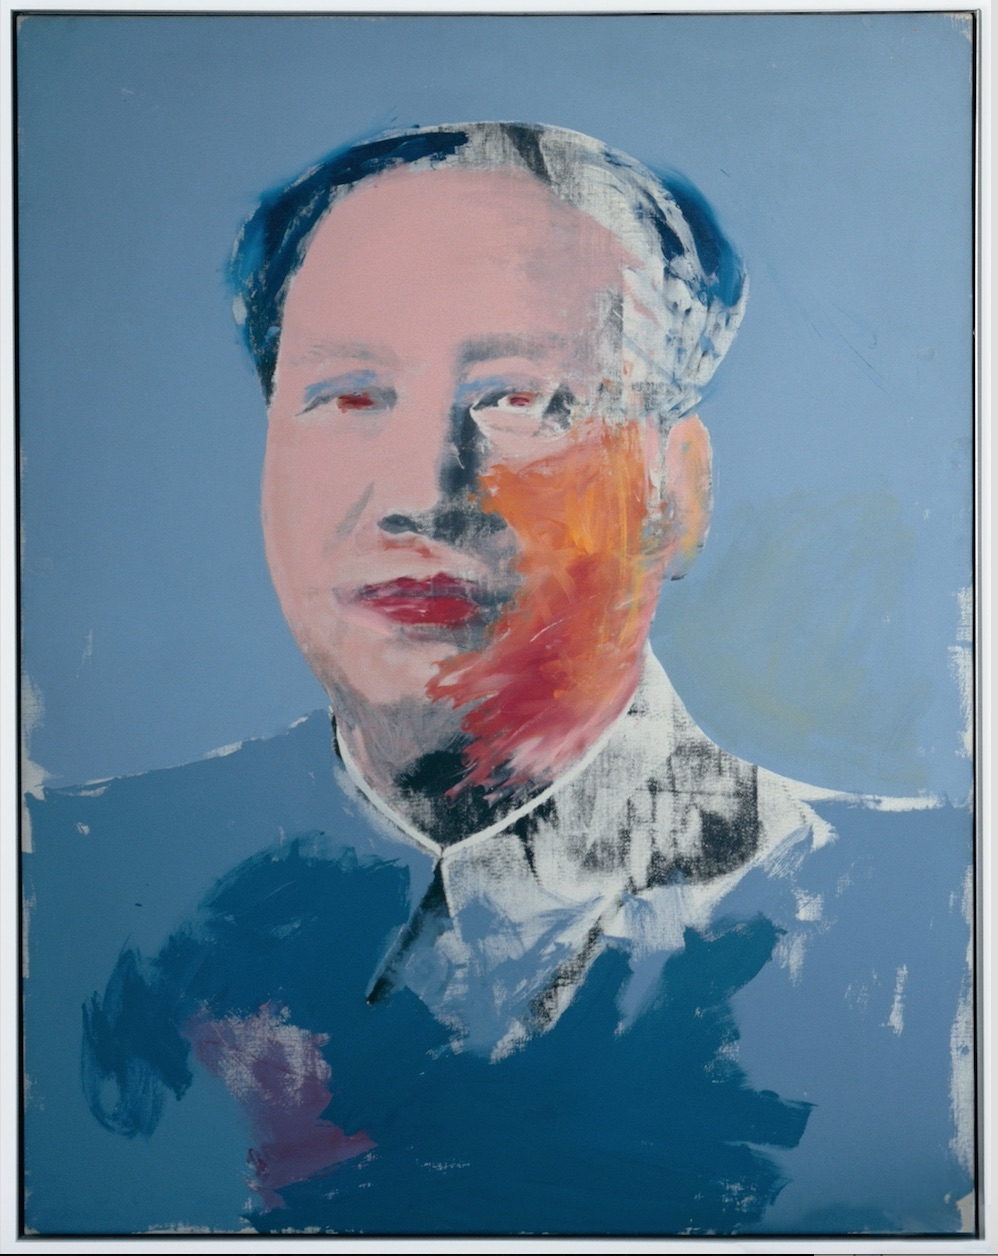 MAO. 1972. Acrylic and silkscreen ink on linen. Josep Suñol Collection, Barcelona © 2017 The Andy Warhol Foundation for the Visual Arts, Inc. / VEGAP